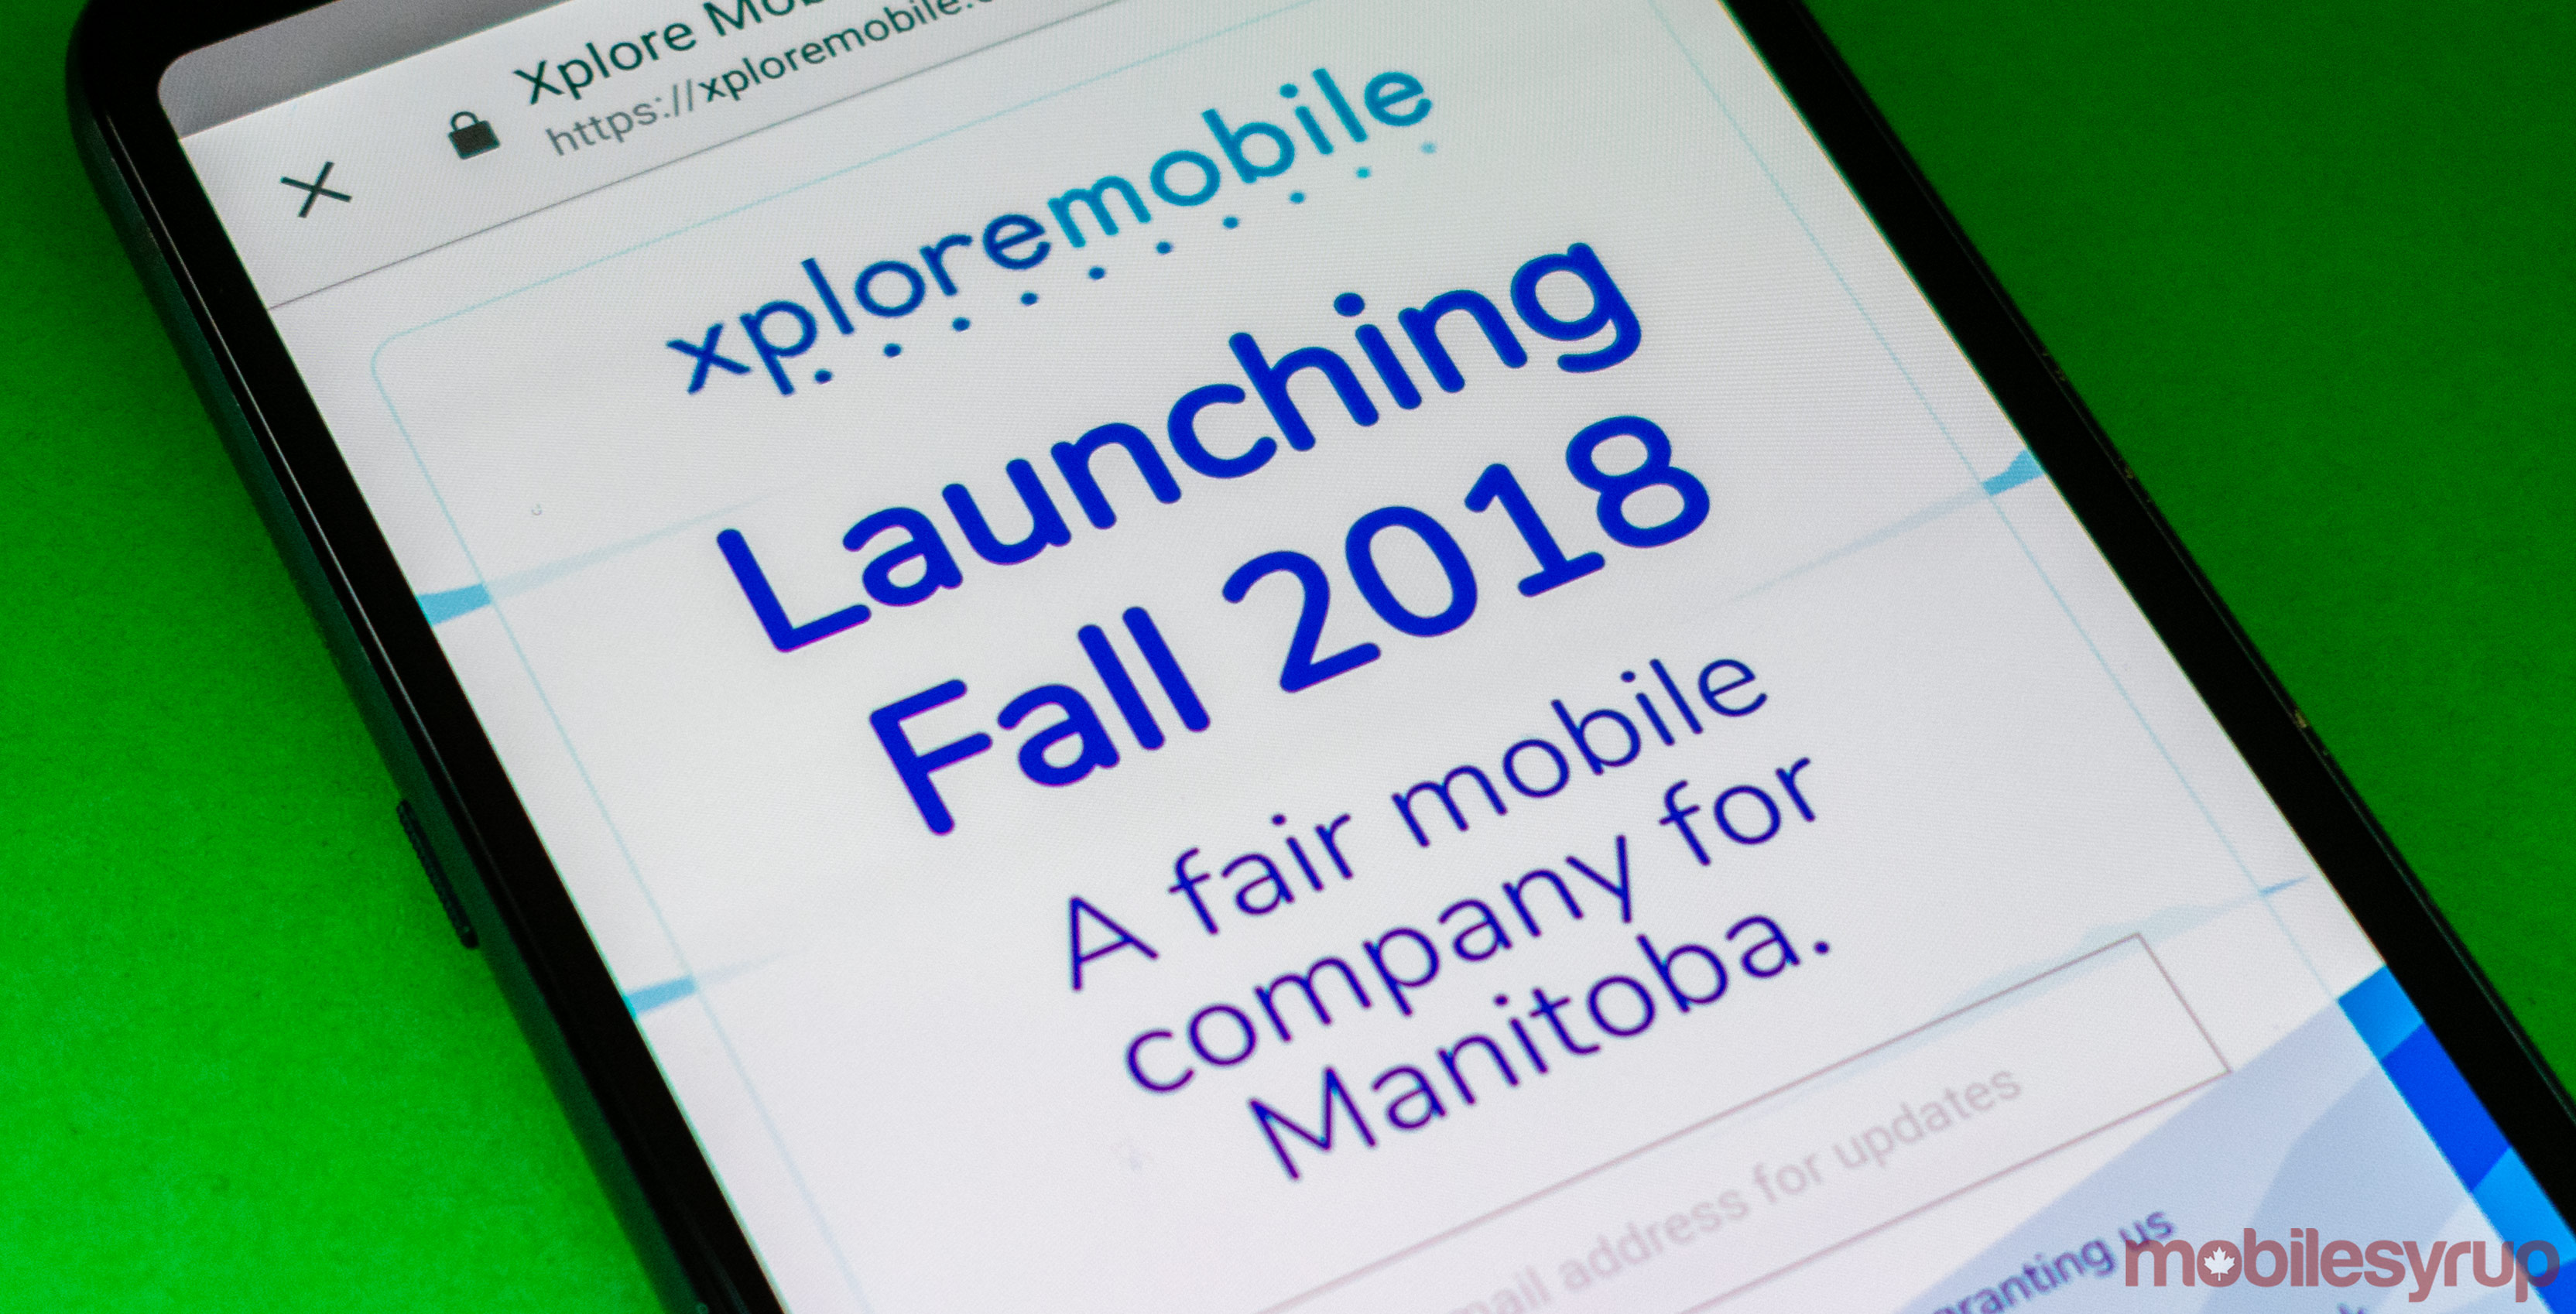 Xplore Mobile mailing Manitoba Bell, Virgin Mobile subscribers to